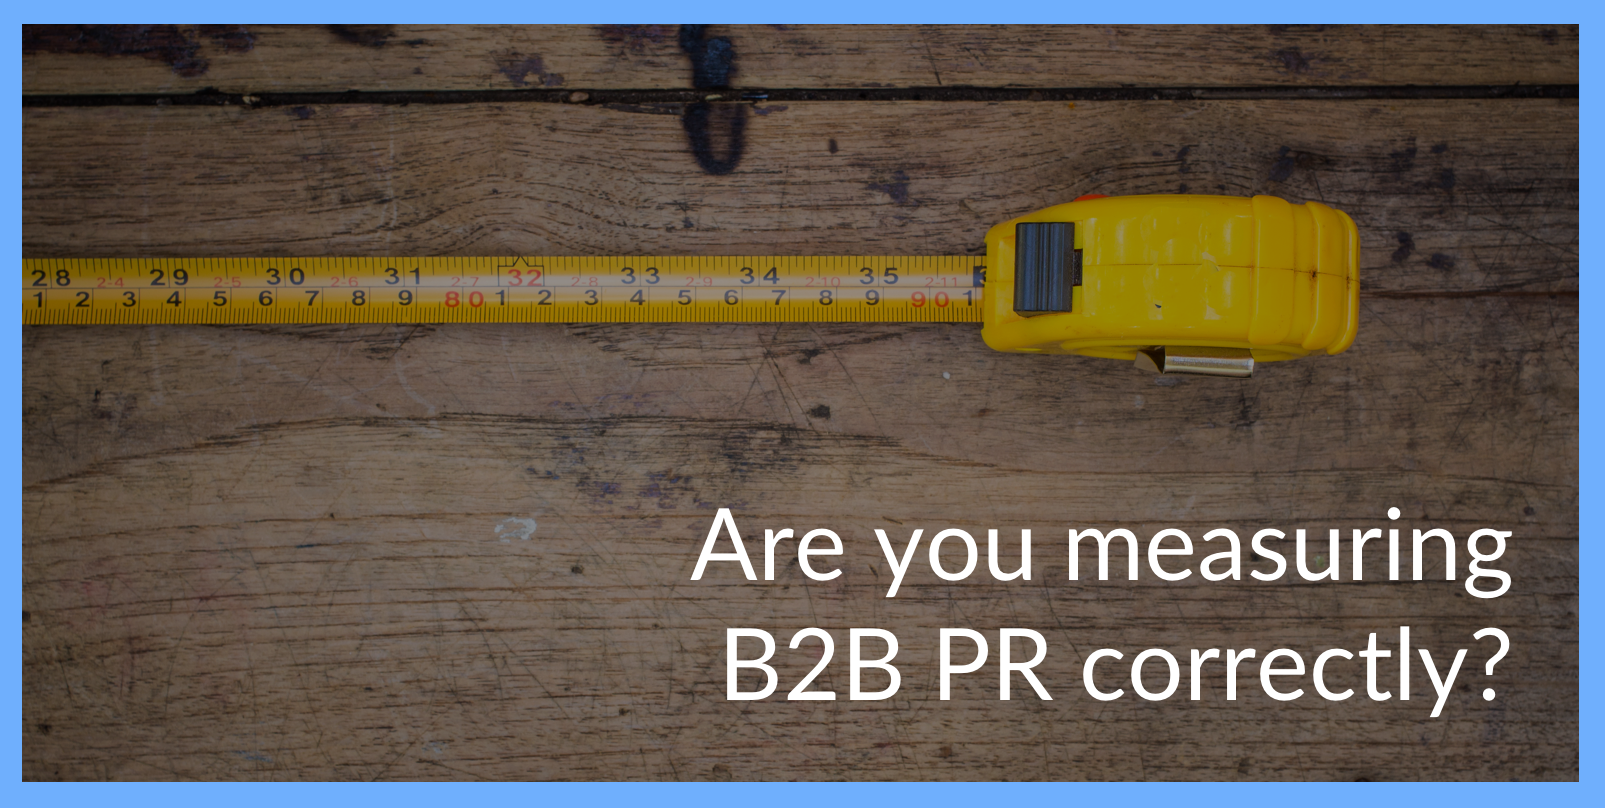 Are you measuring B2B PR correctly?